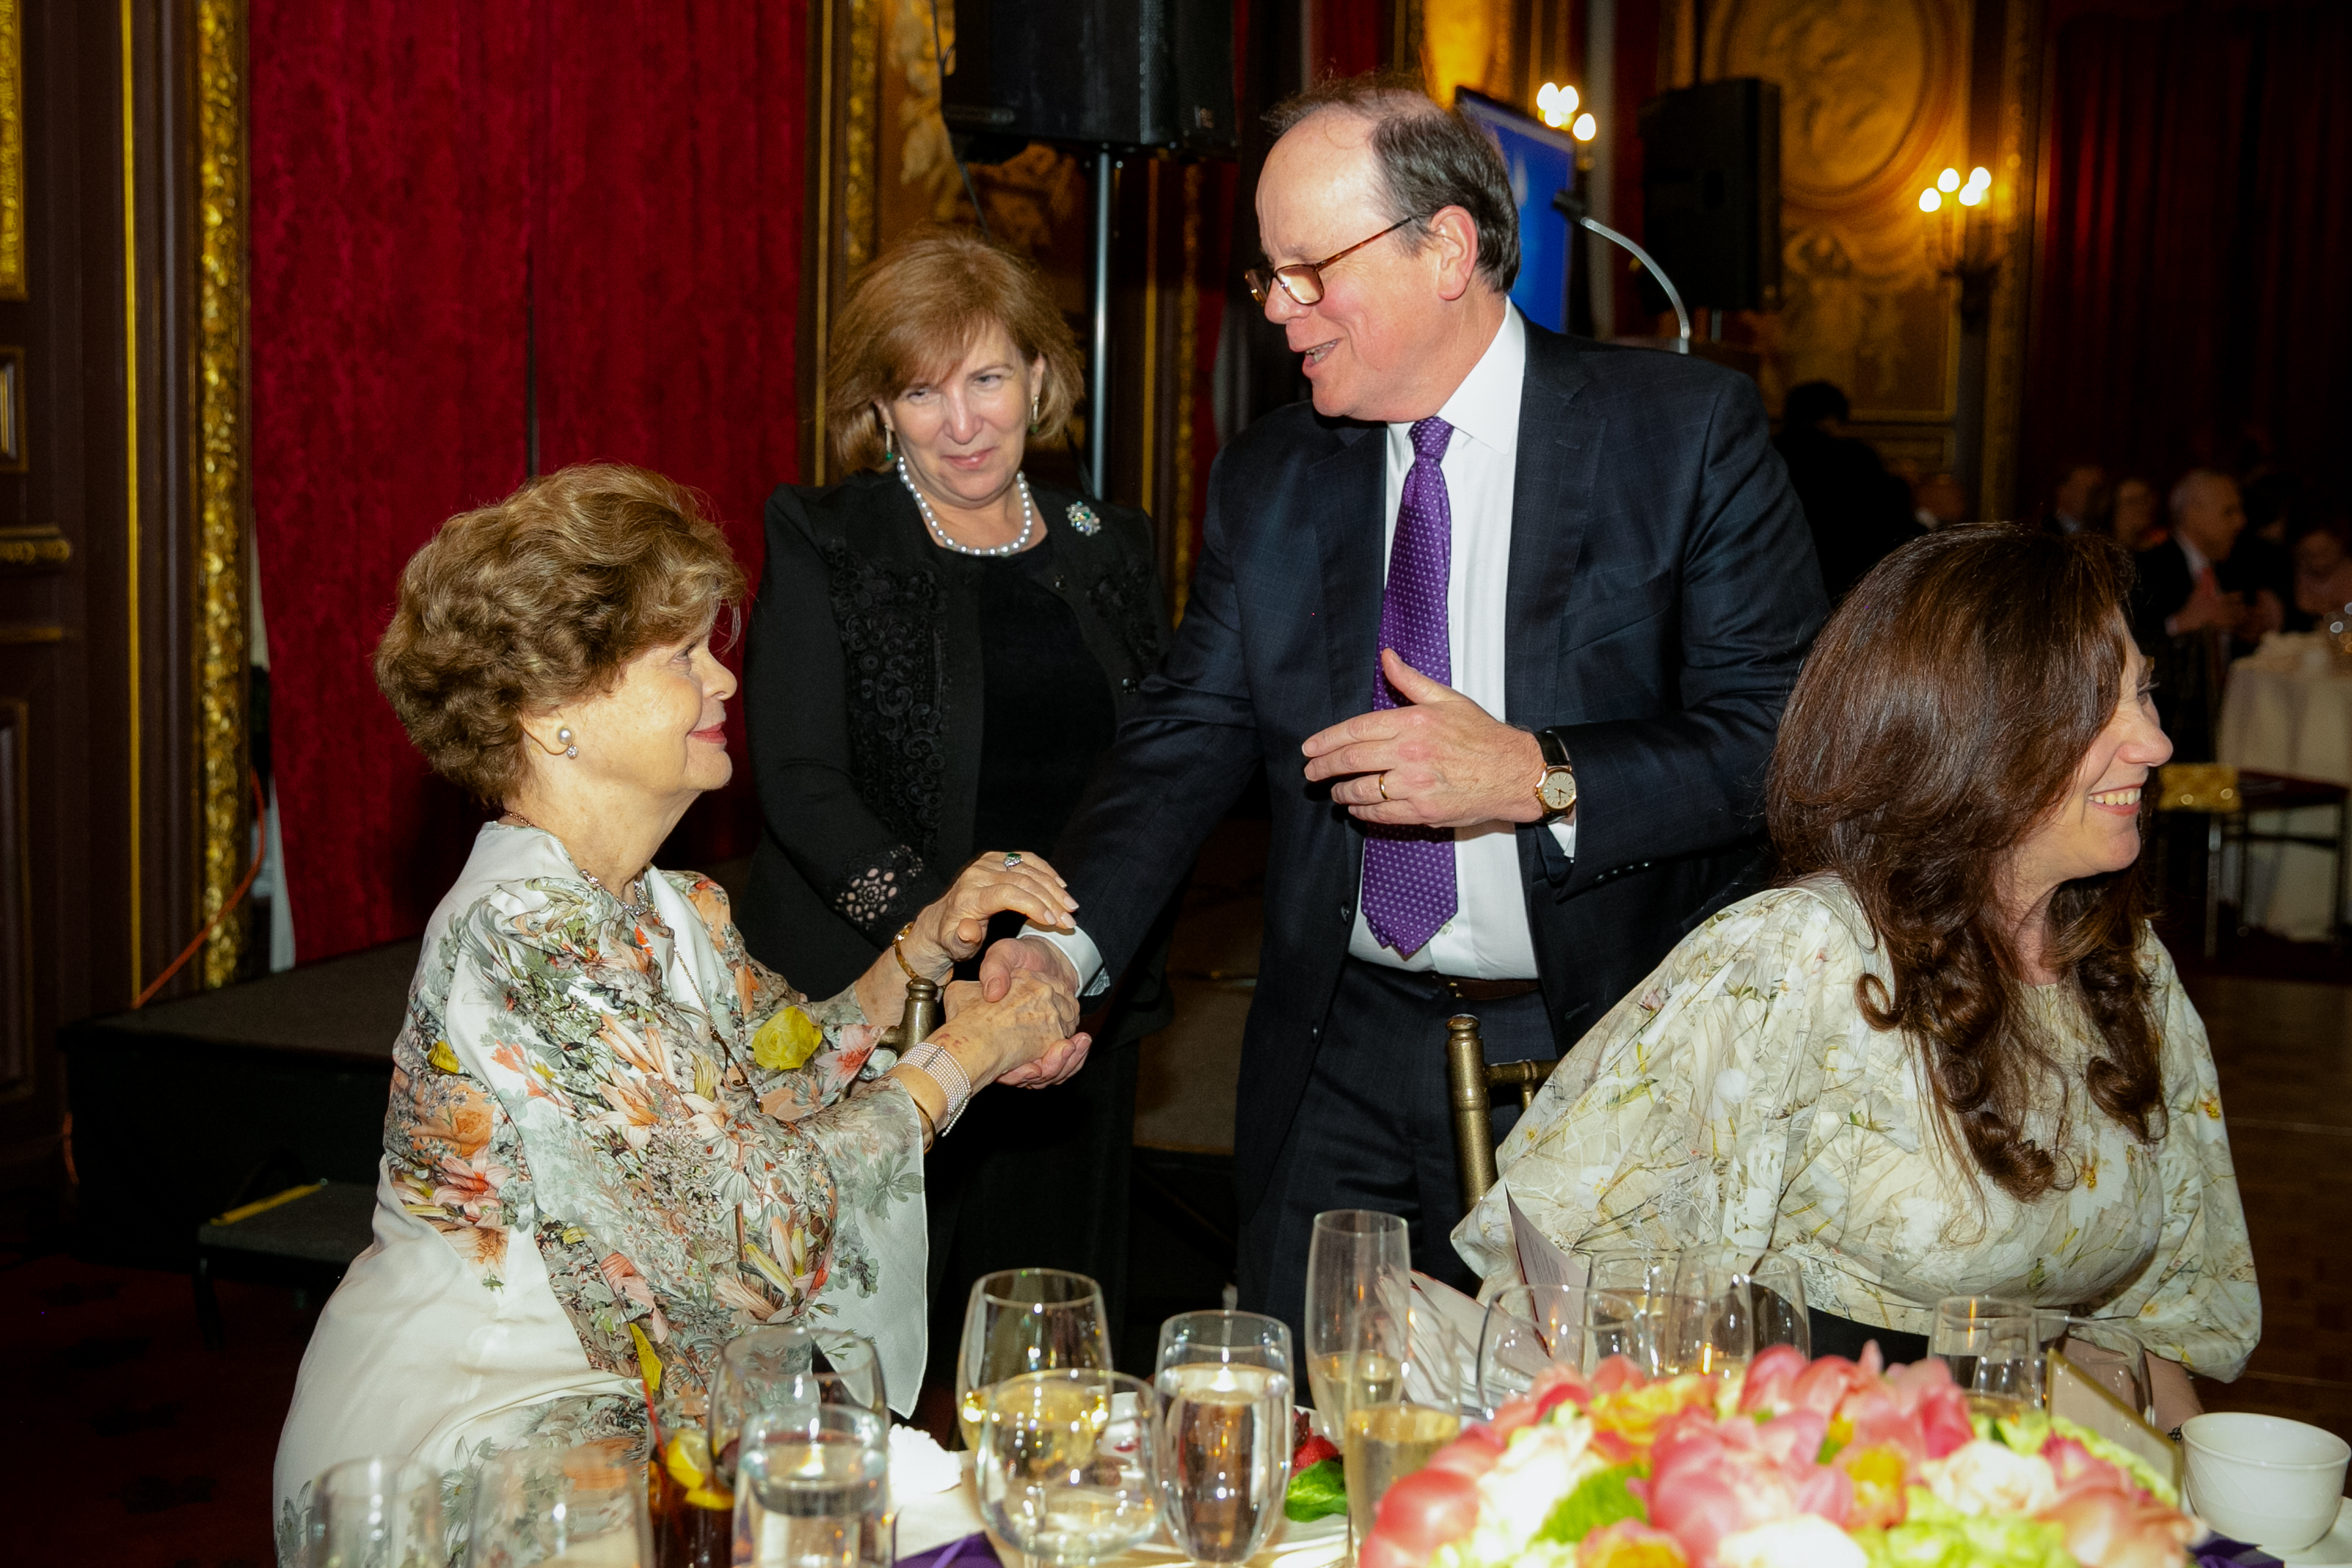 Dr. Legato greeting a guest at the 2019 Gala Event